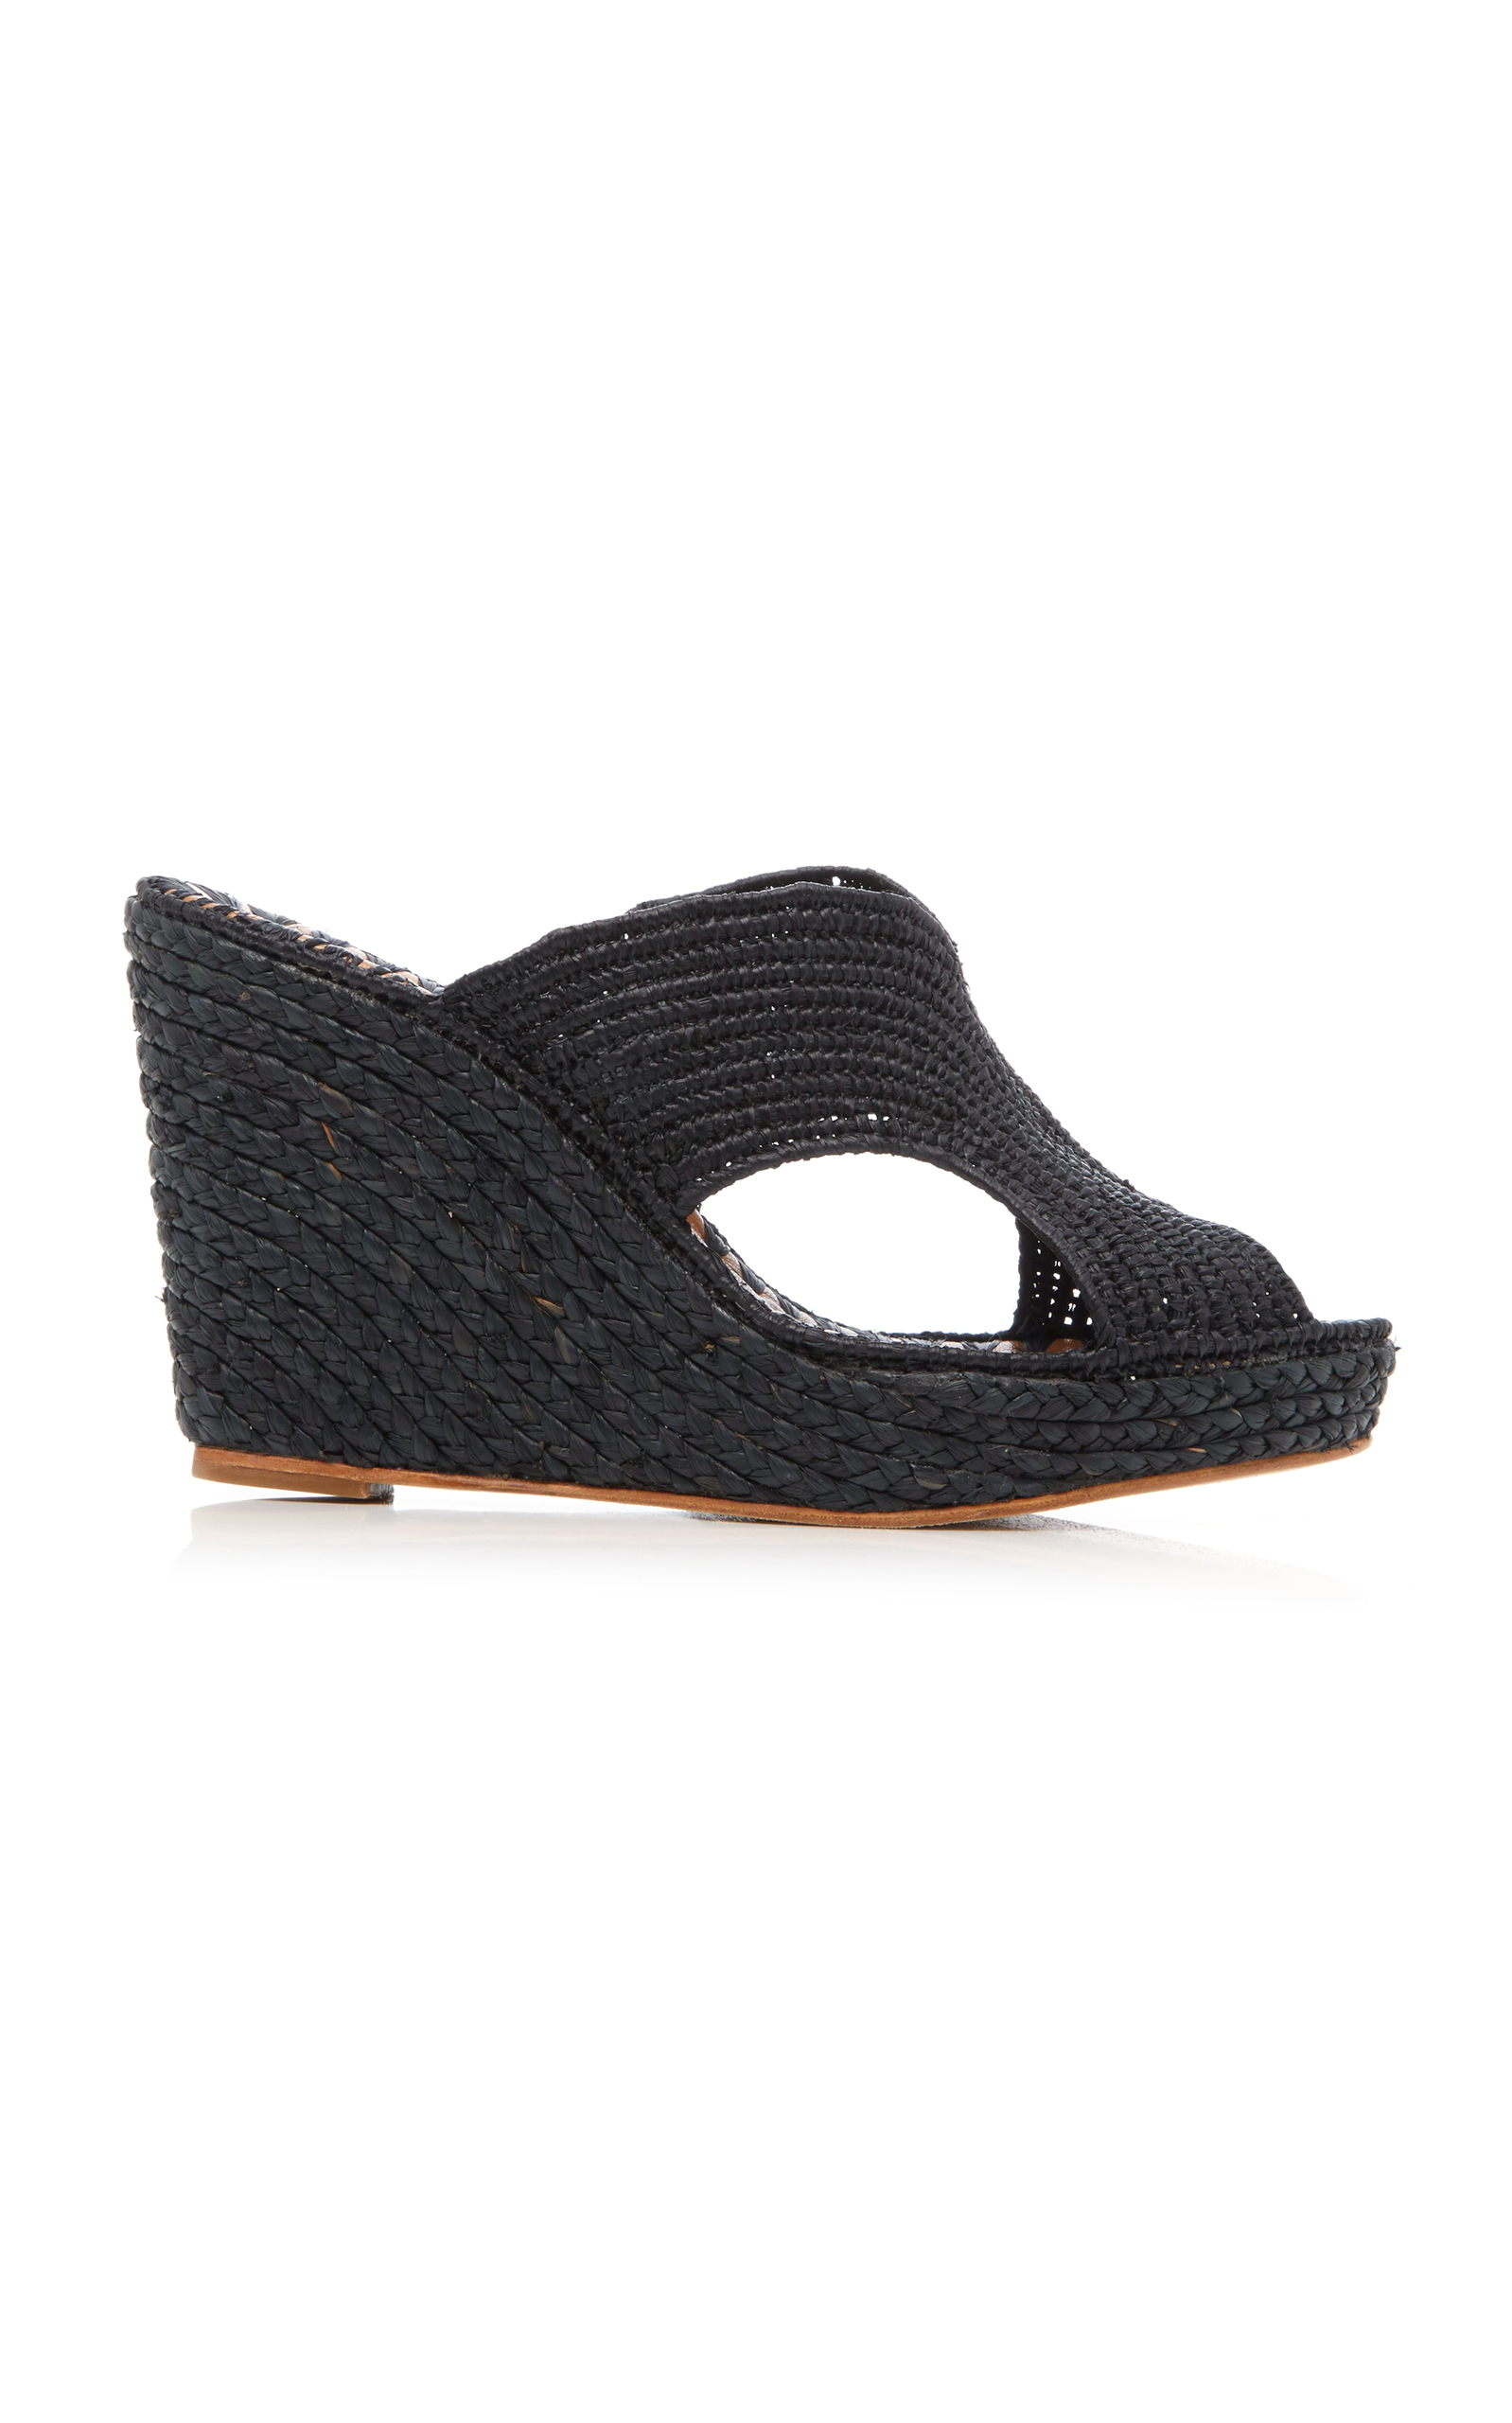 Lina Raffia Wedge SlidesCarrie Forbes Dims40NE